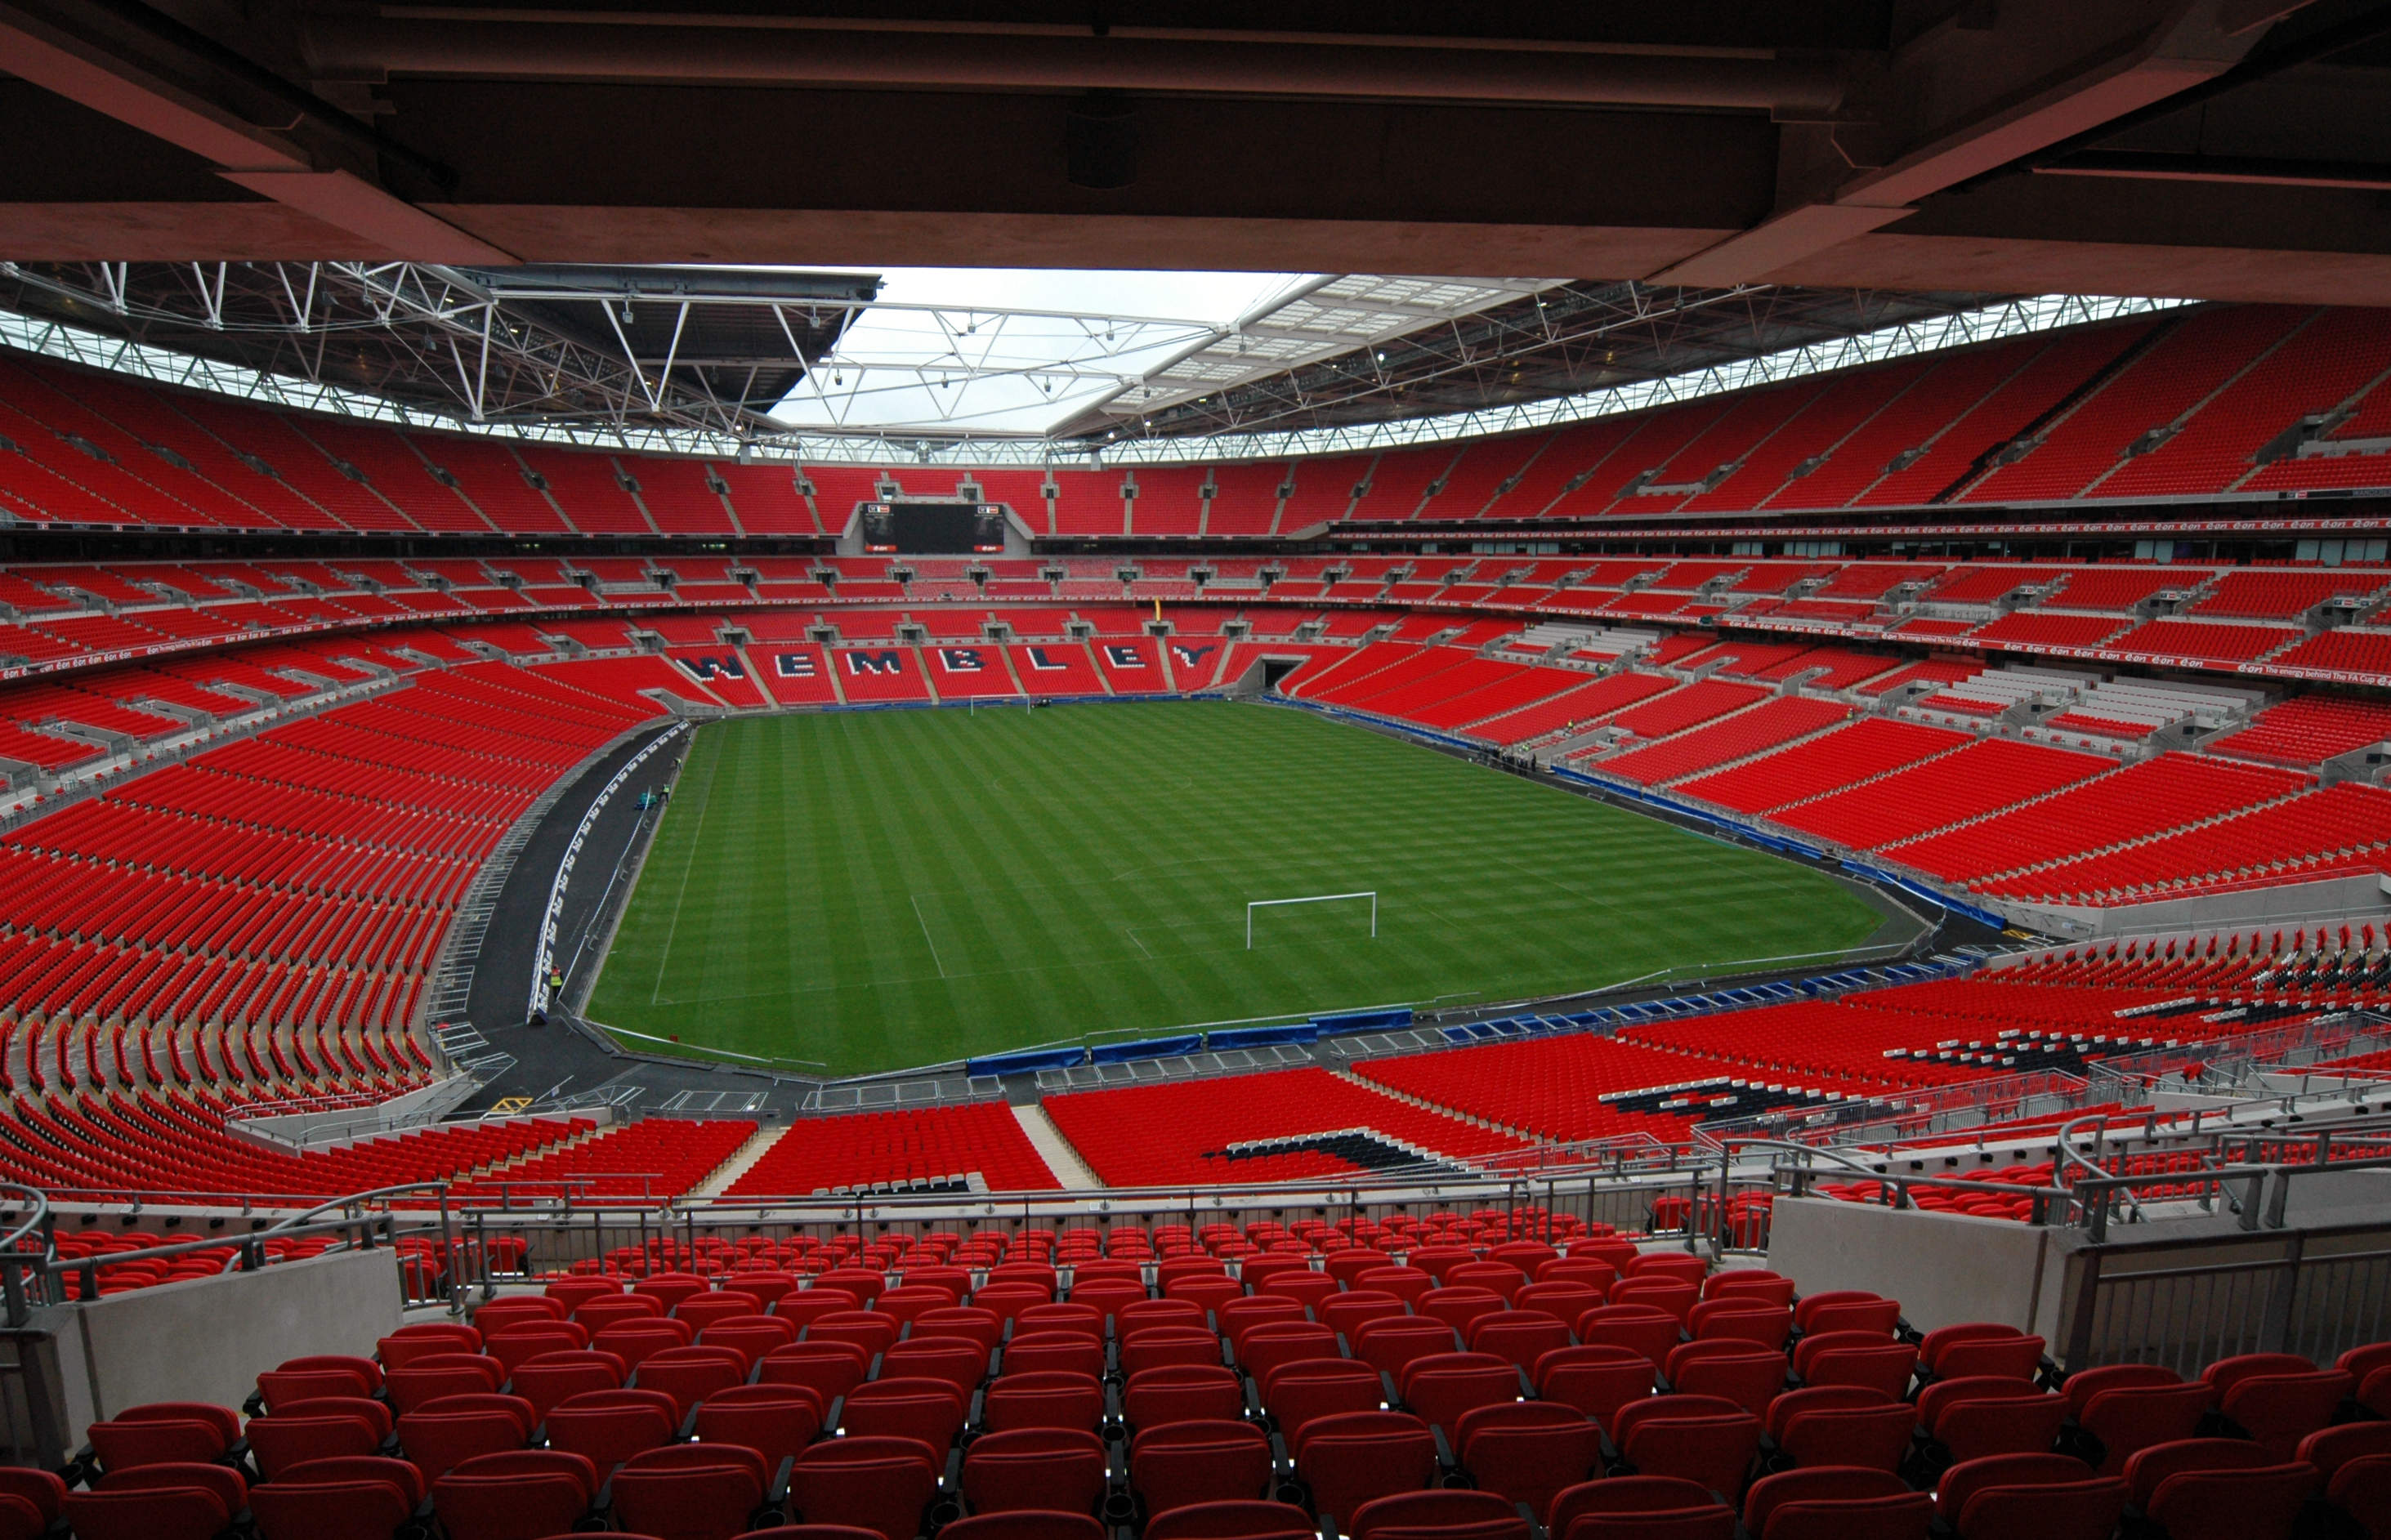 Wembley Stadium, delayed construction projects in the UK